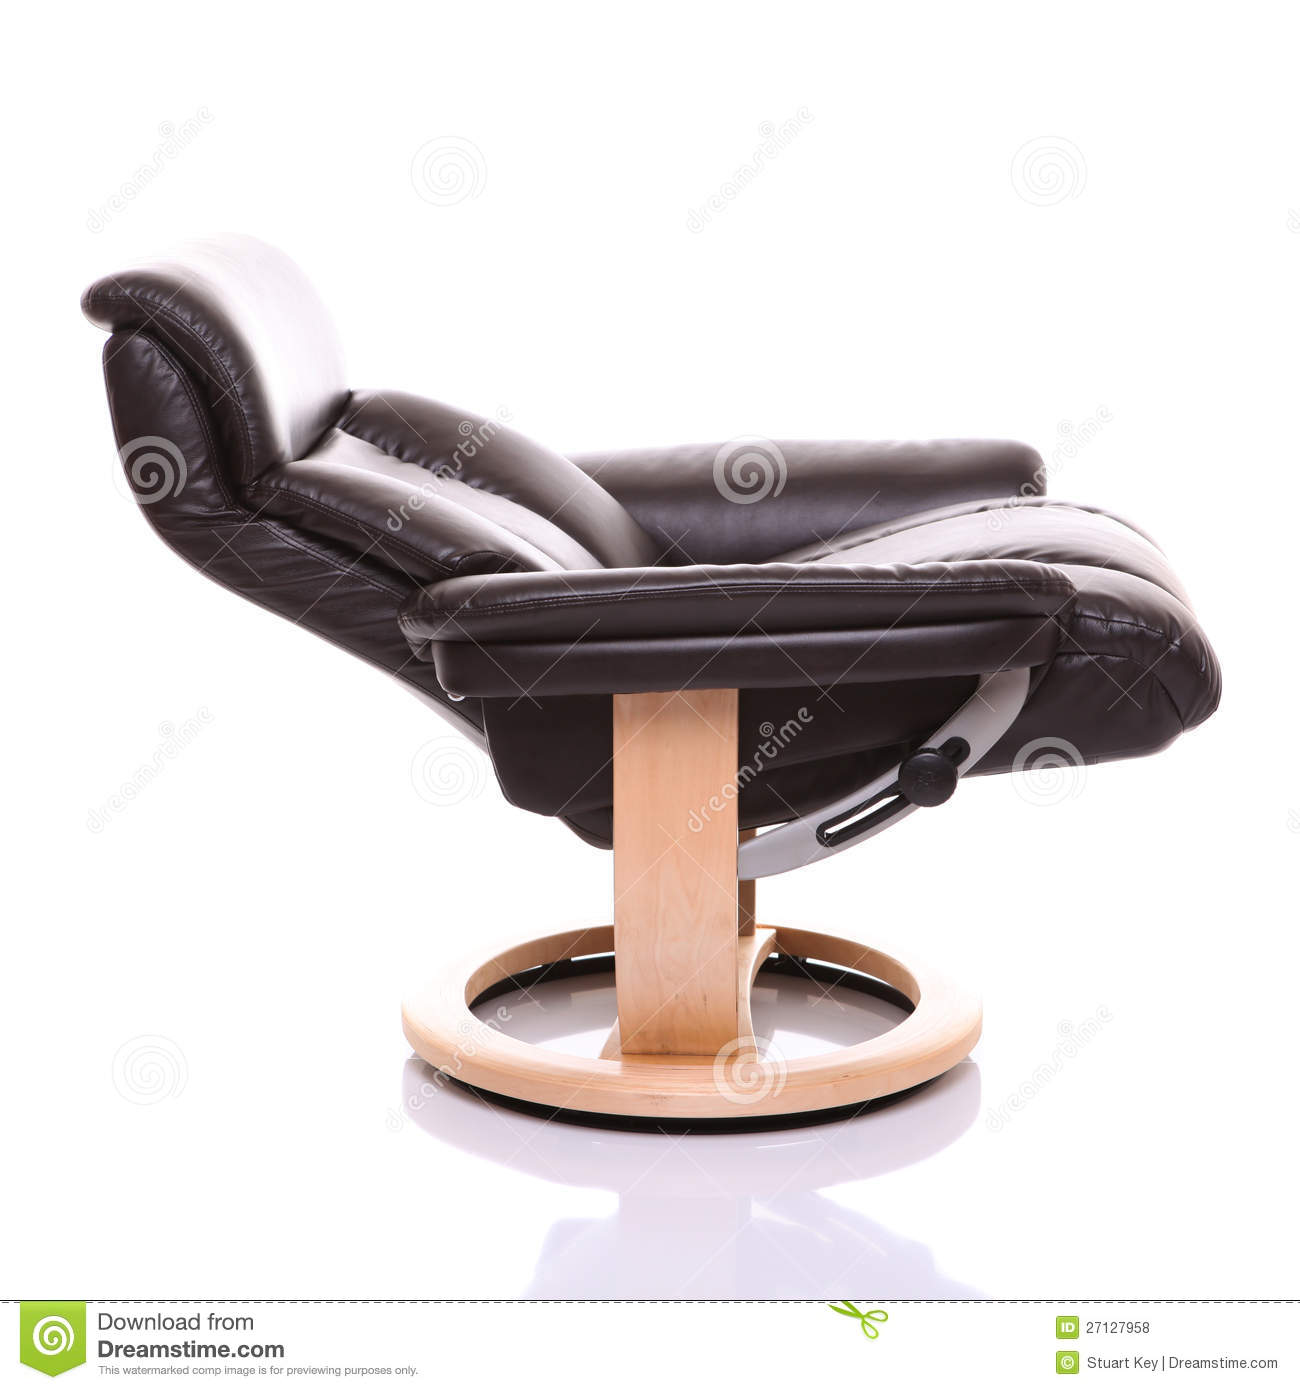 Royalty-Free Stock Photo. Download Fully Reclined Luxurious Leather Recliner Chair.  sc 1 st  Dreamstime.com : free recliner chairs - islam-shia.org